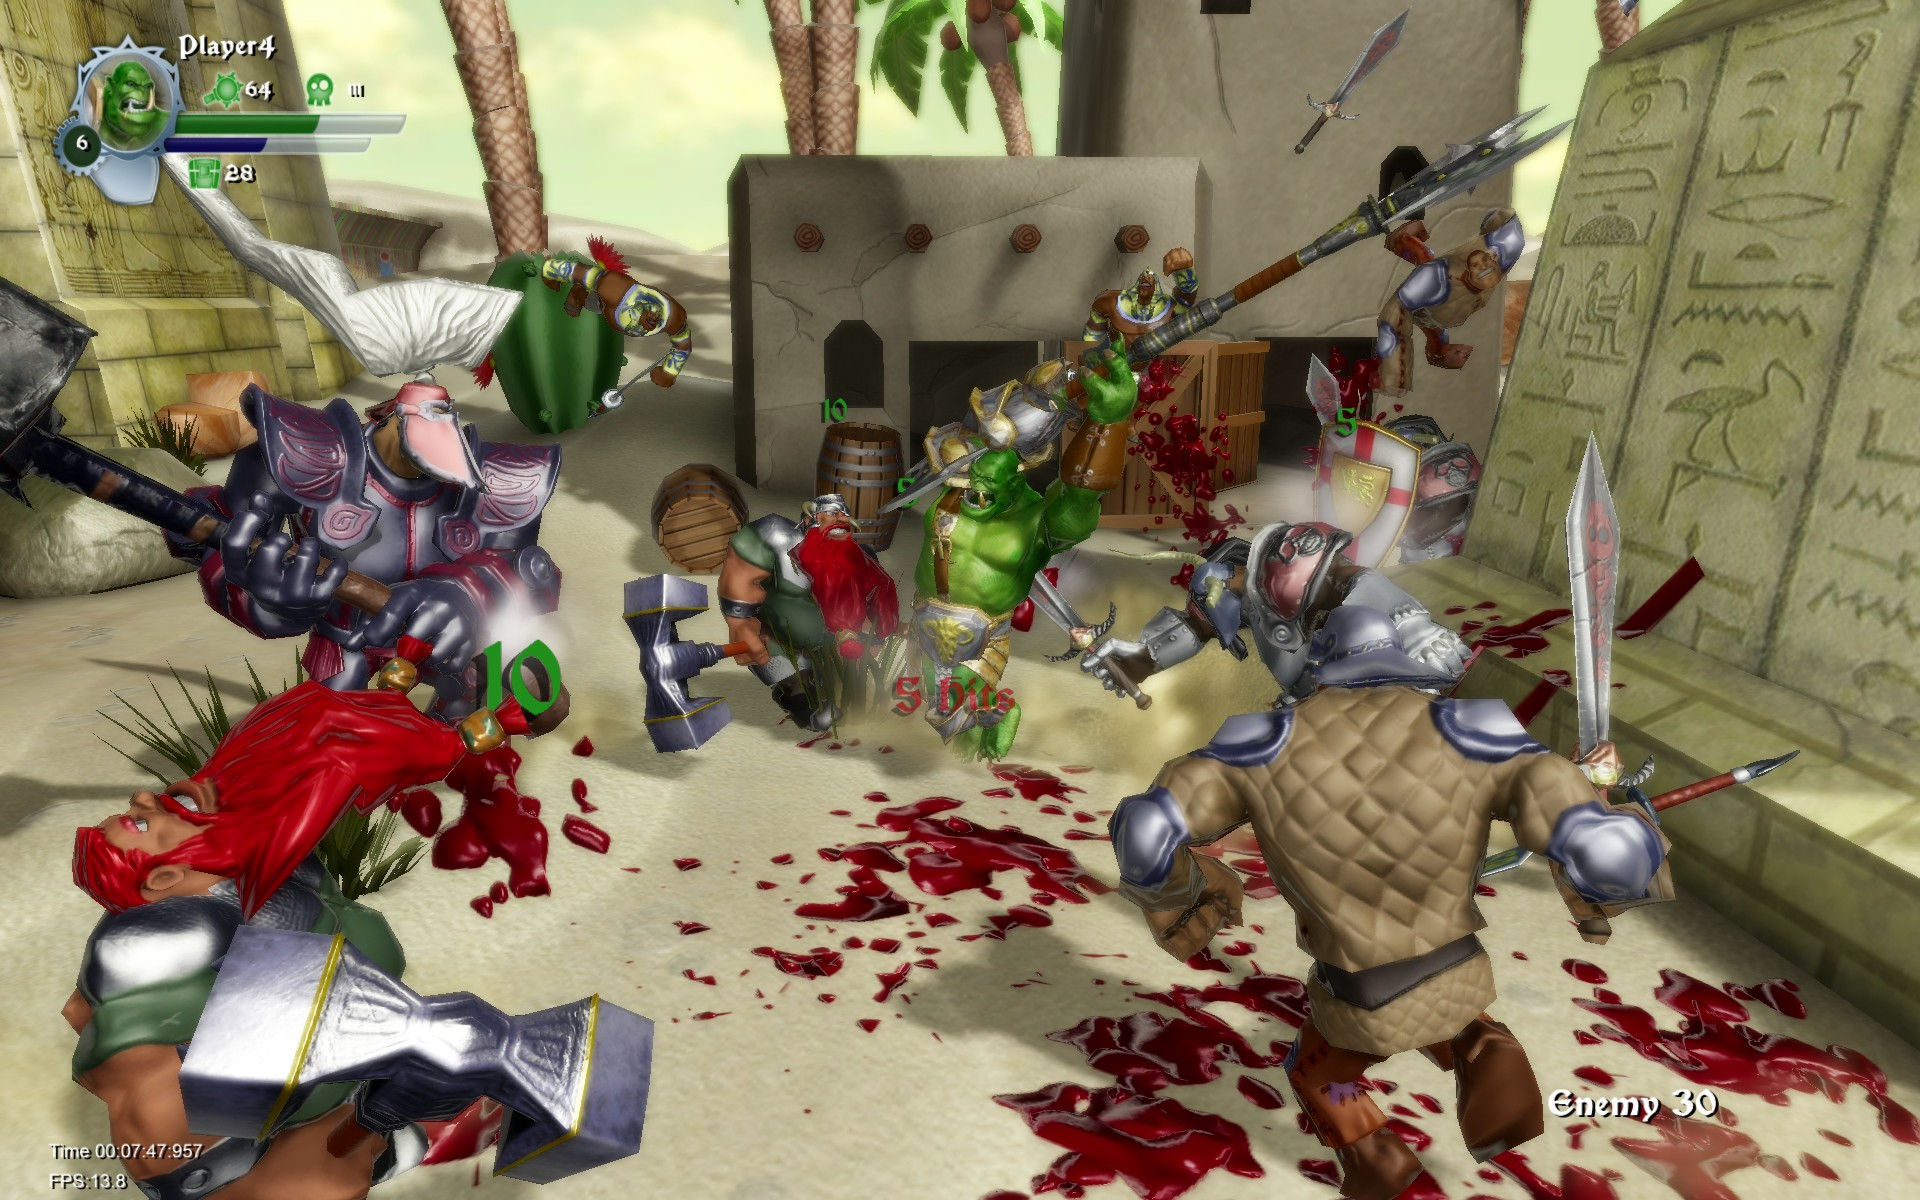 Casual Brothers set to bring Orc Attack to XBLA later this year